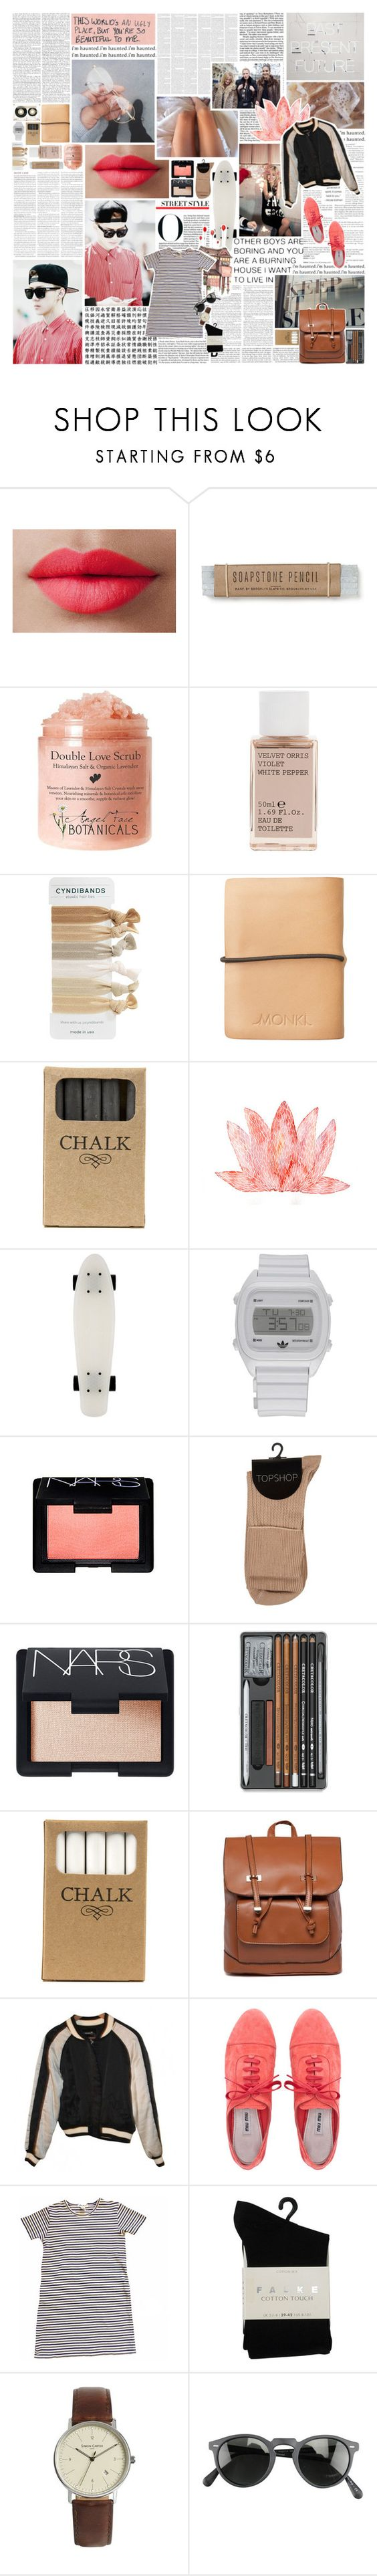 """""""i'm a sinner, i'm a liar. want forgiveness, but i'm tired. (let go i'm ready for it.)"""" by nevi ❤ liked on Polyvore featuring LORAC, Privileged, Korres, Olsen, Monki, Jayson Home, adidas, NARS Cosmetics, Isabel Marant and Miu Miu"""